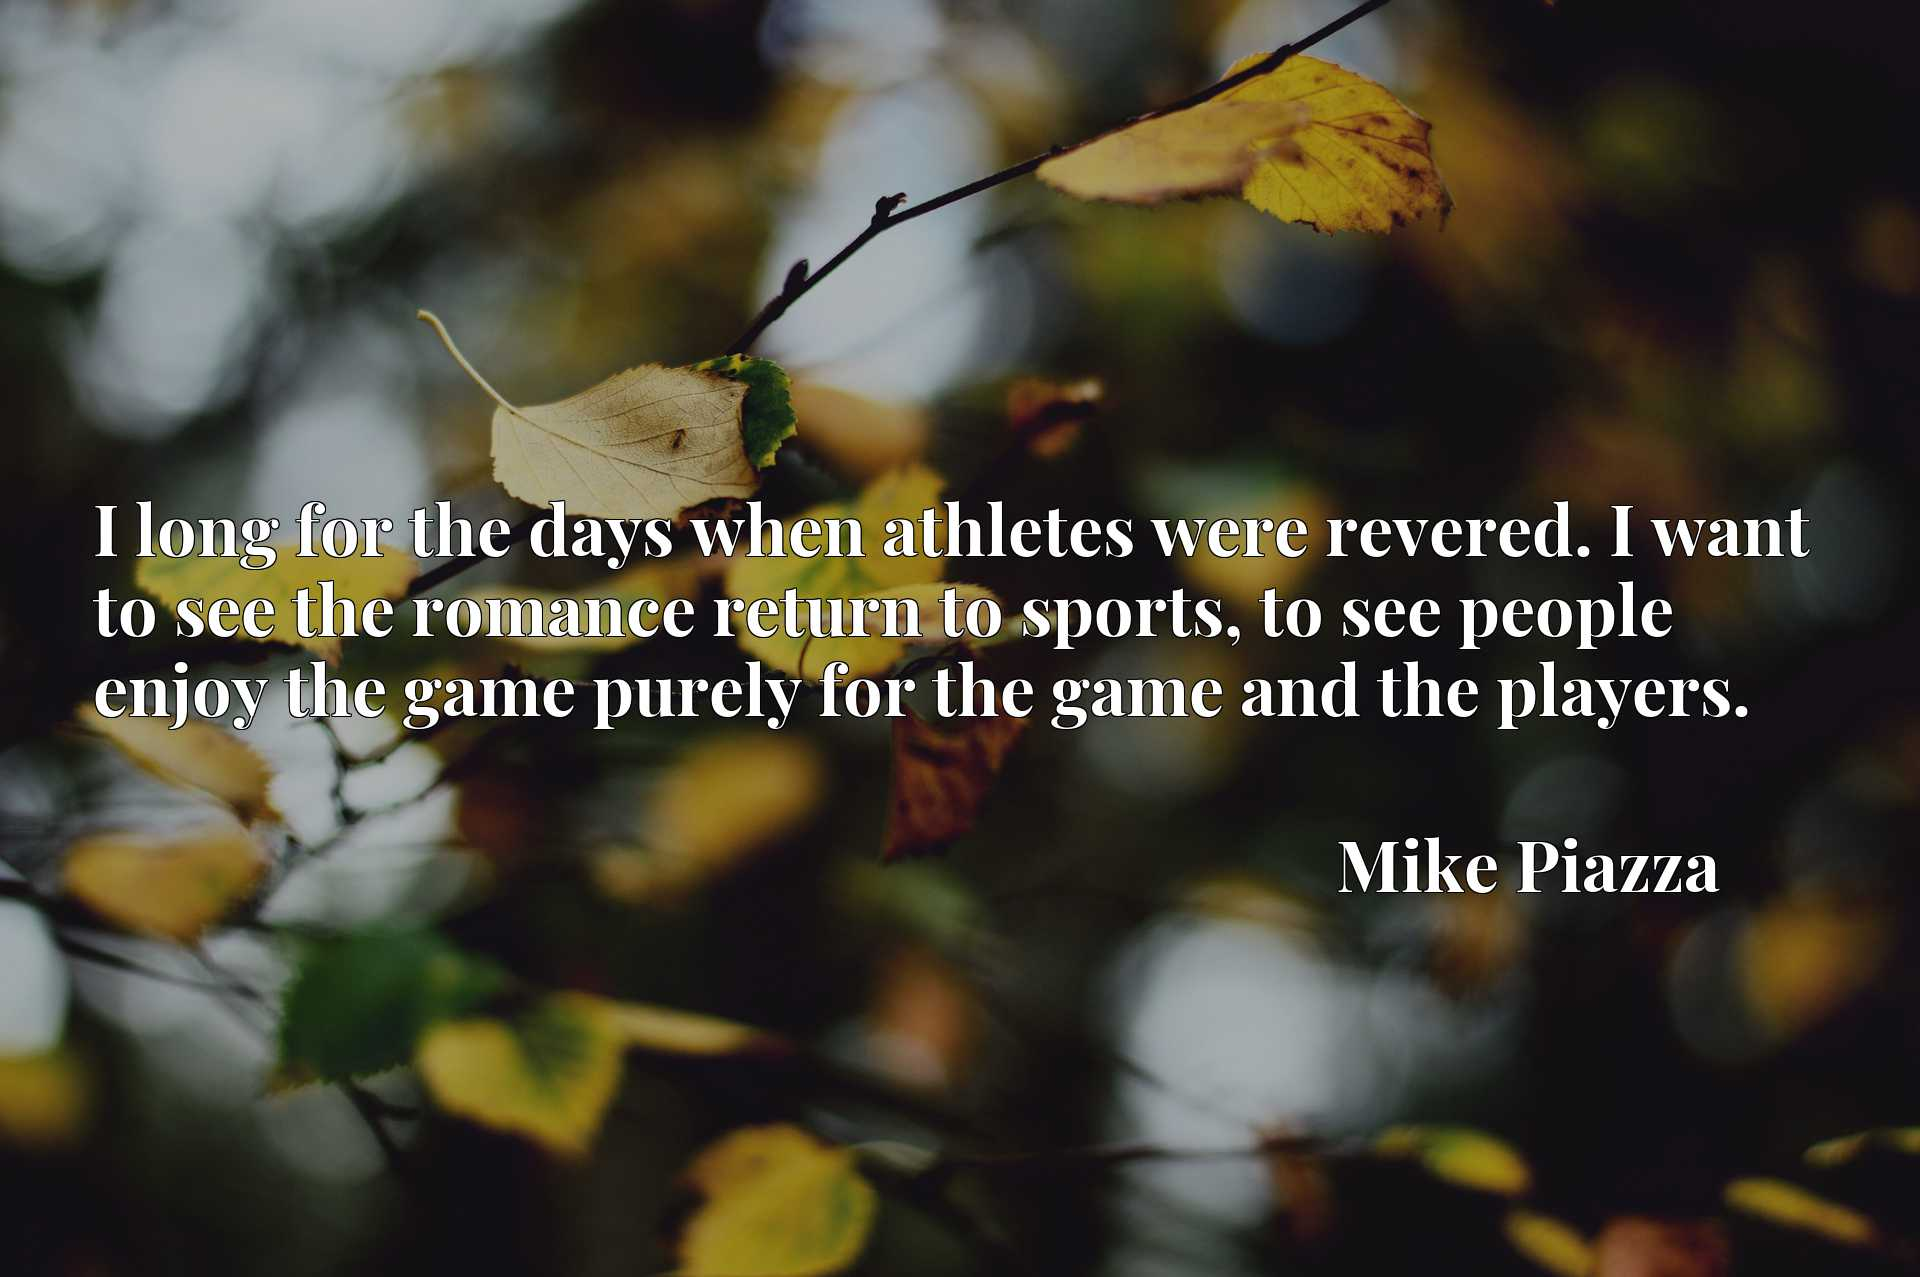 Quote Picture :I long for the days when athletes were revered. I want to see the romance return to sports, to see people enjoy the game purely for the game and the players.